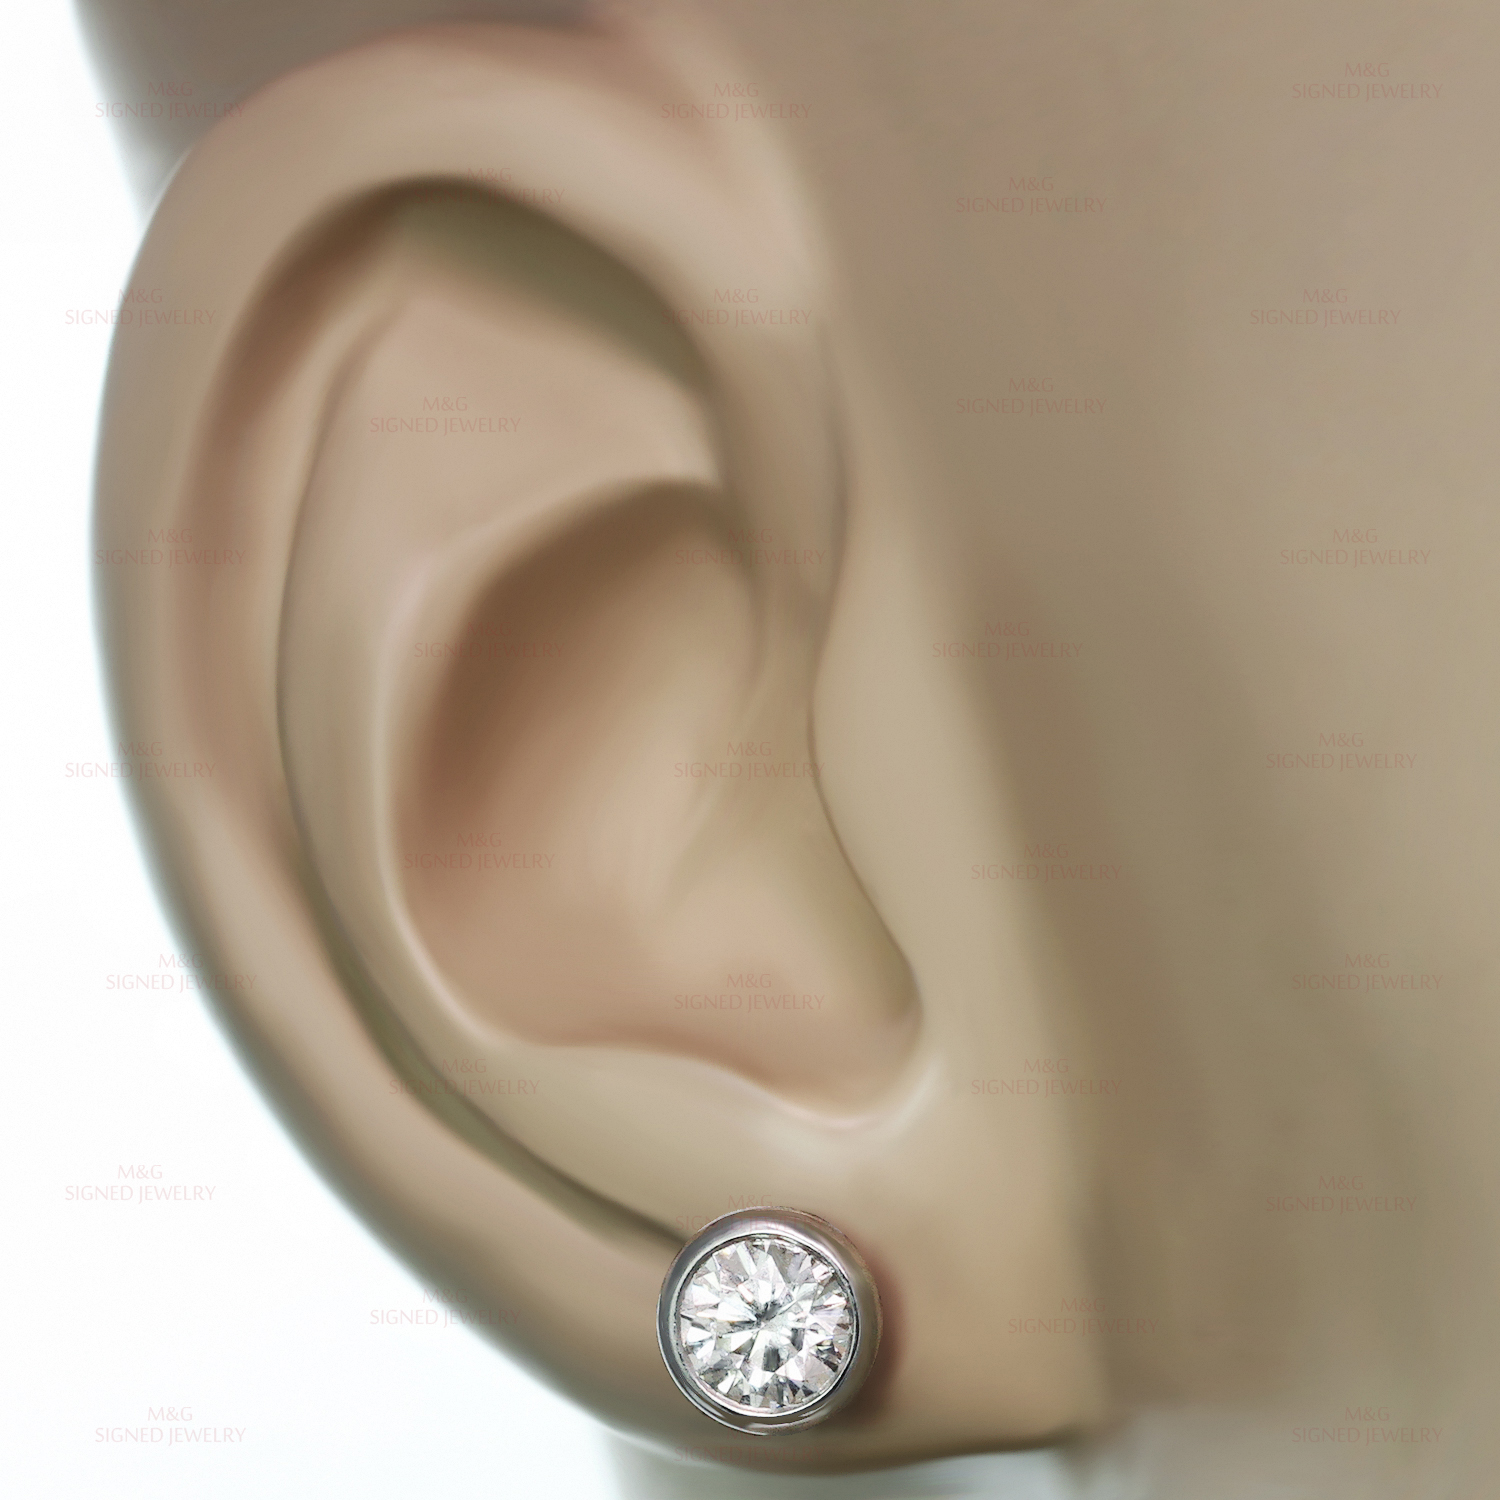 4514493fe TIFFANY & CO. Elsa Peretti Diamonds by the Yard 18k White Gold Stud Earrings